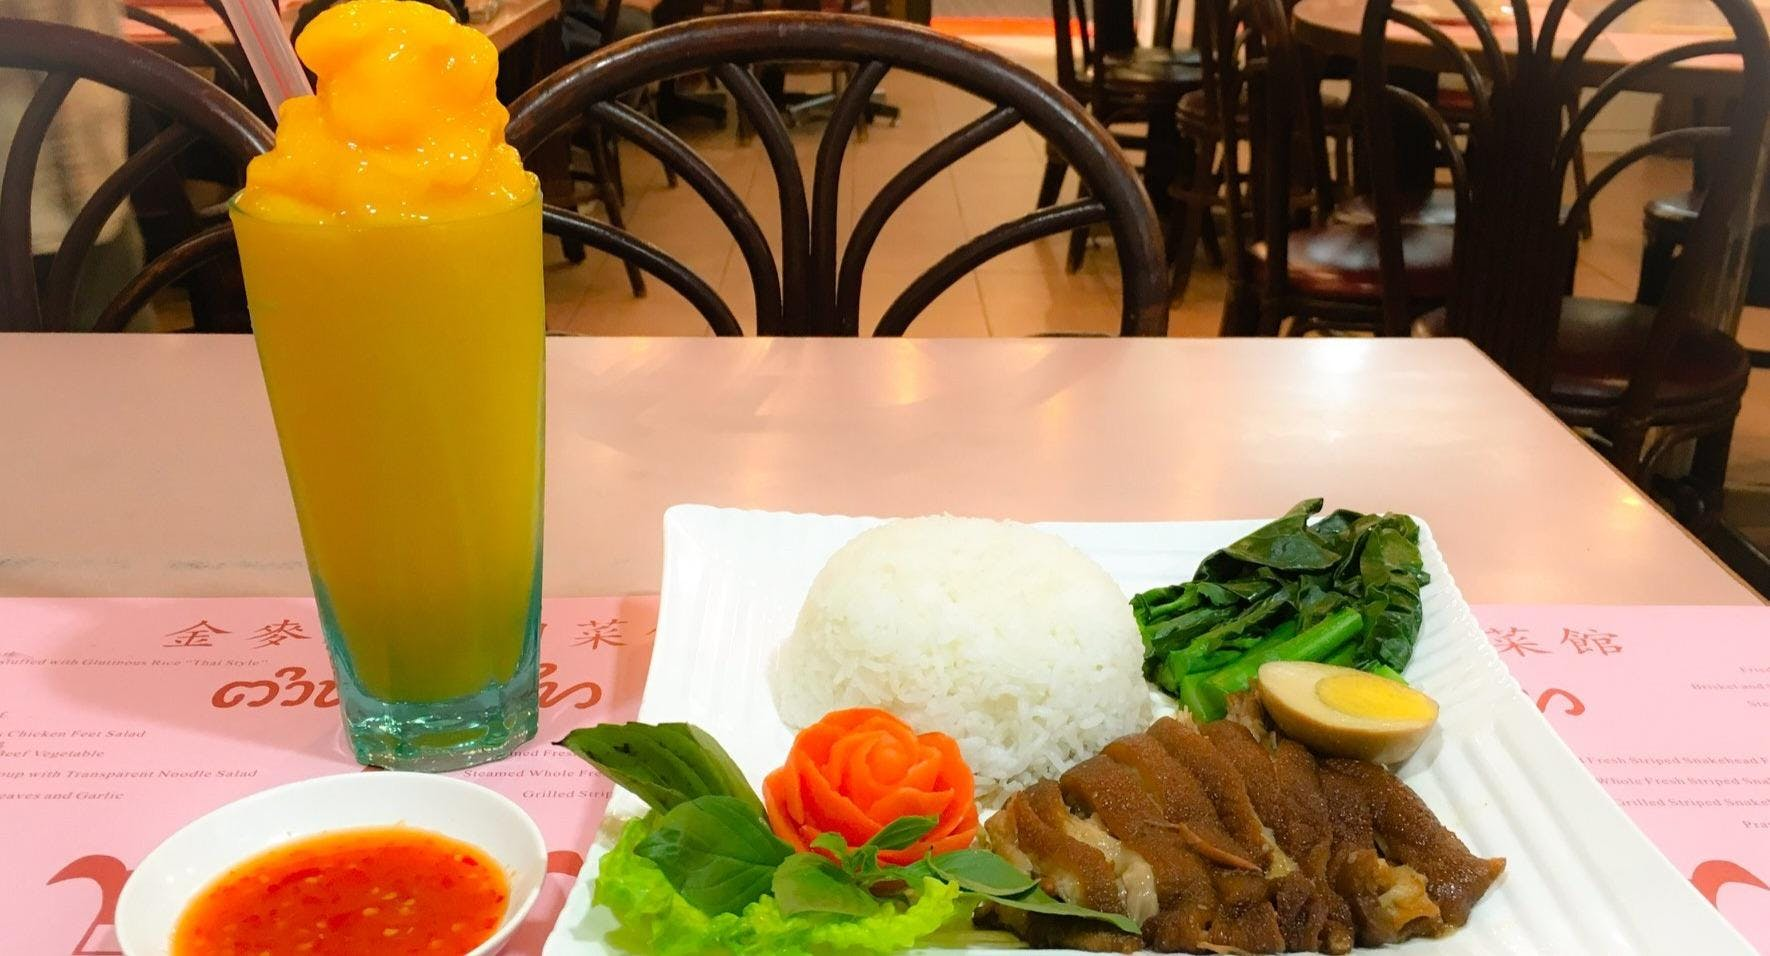 Golden Wheat Thai Restaurant 金麥泰泰國菜館 Hong Kong image 2